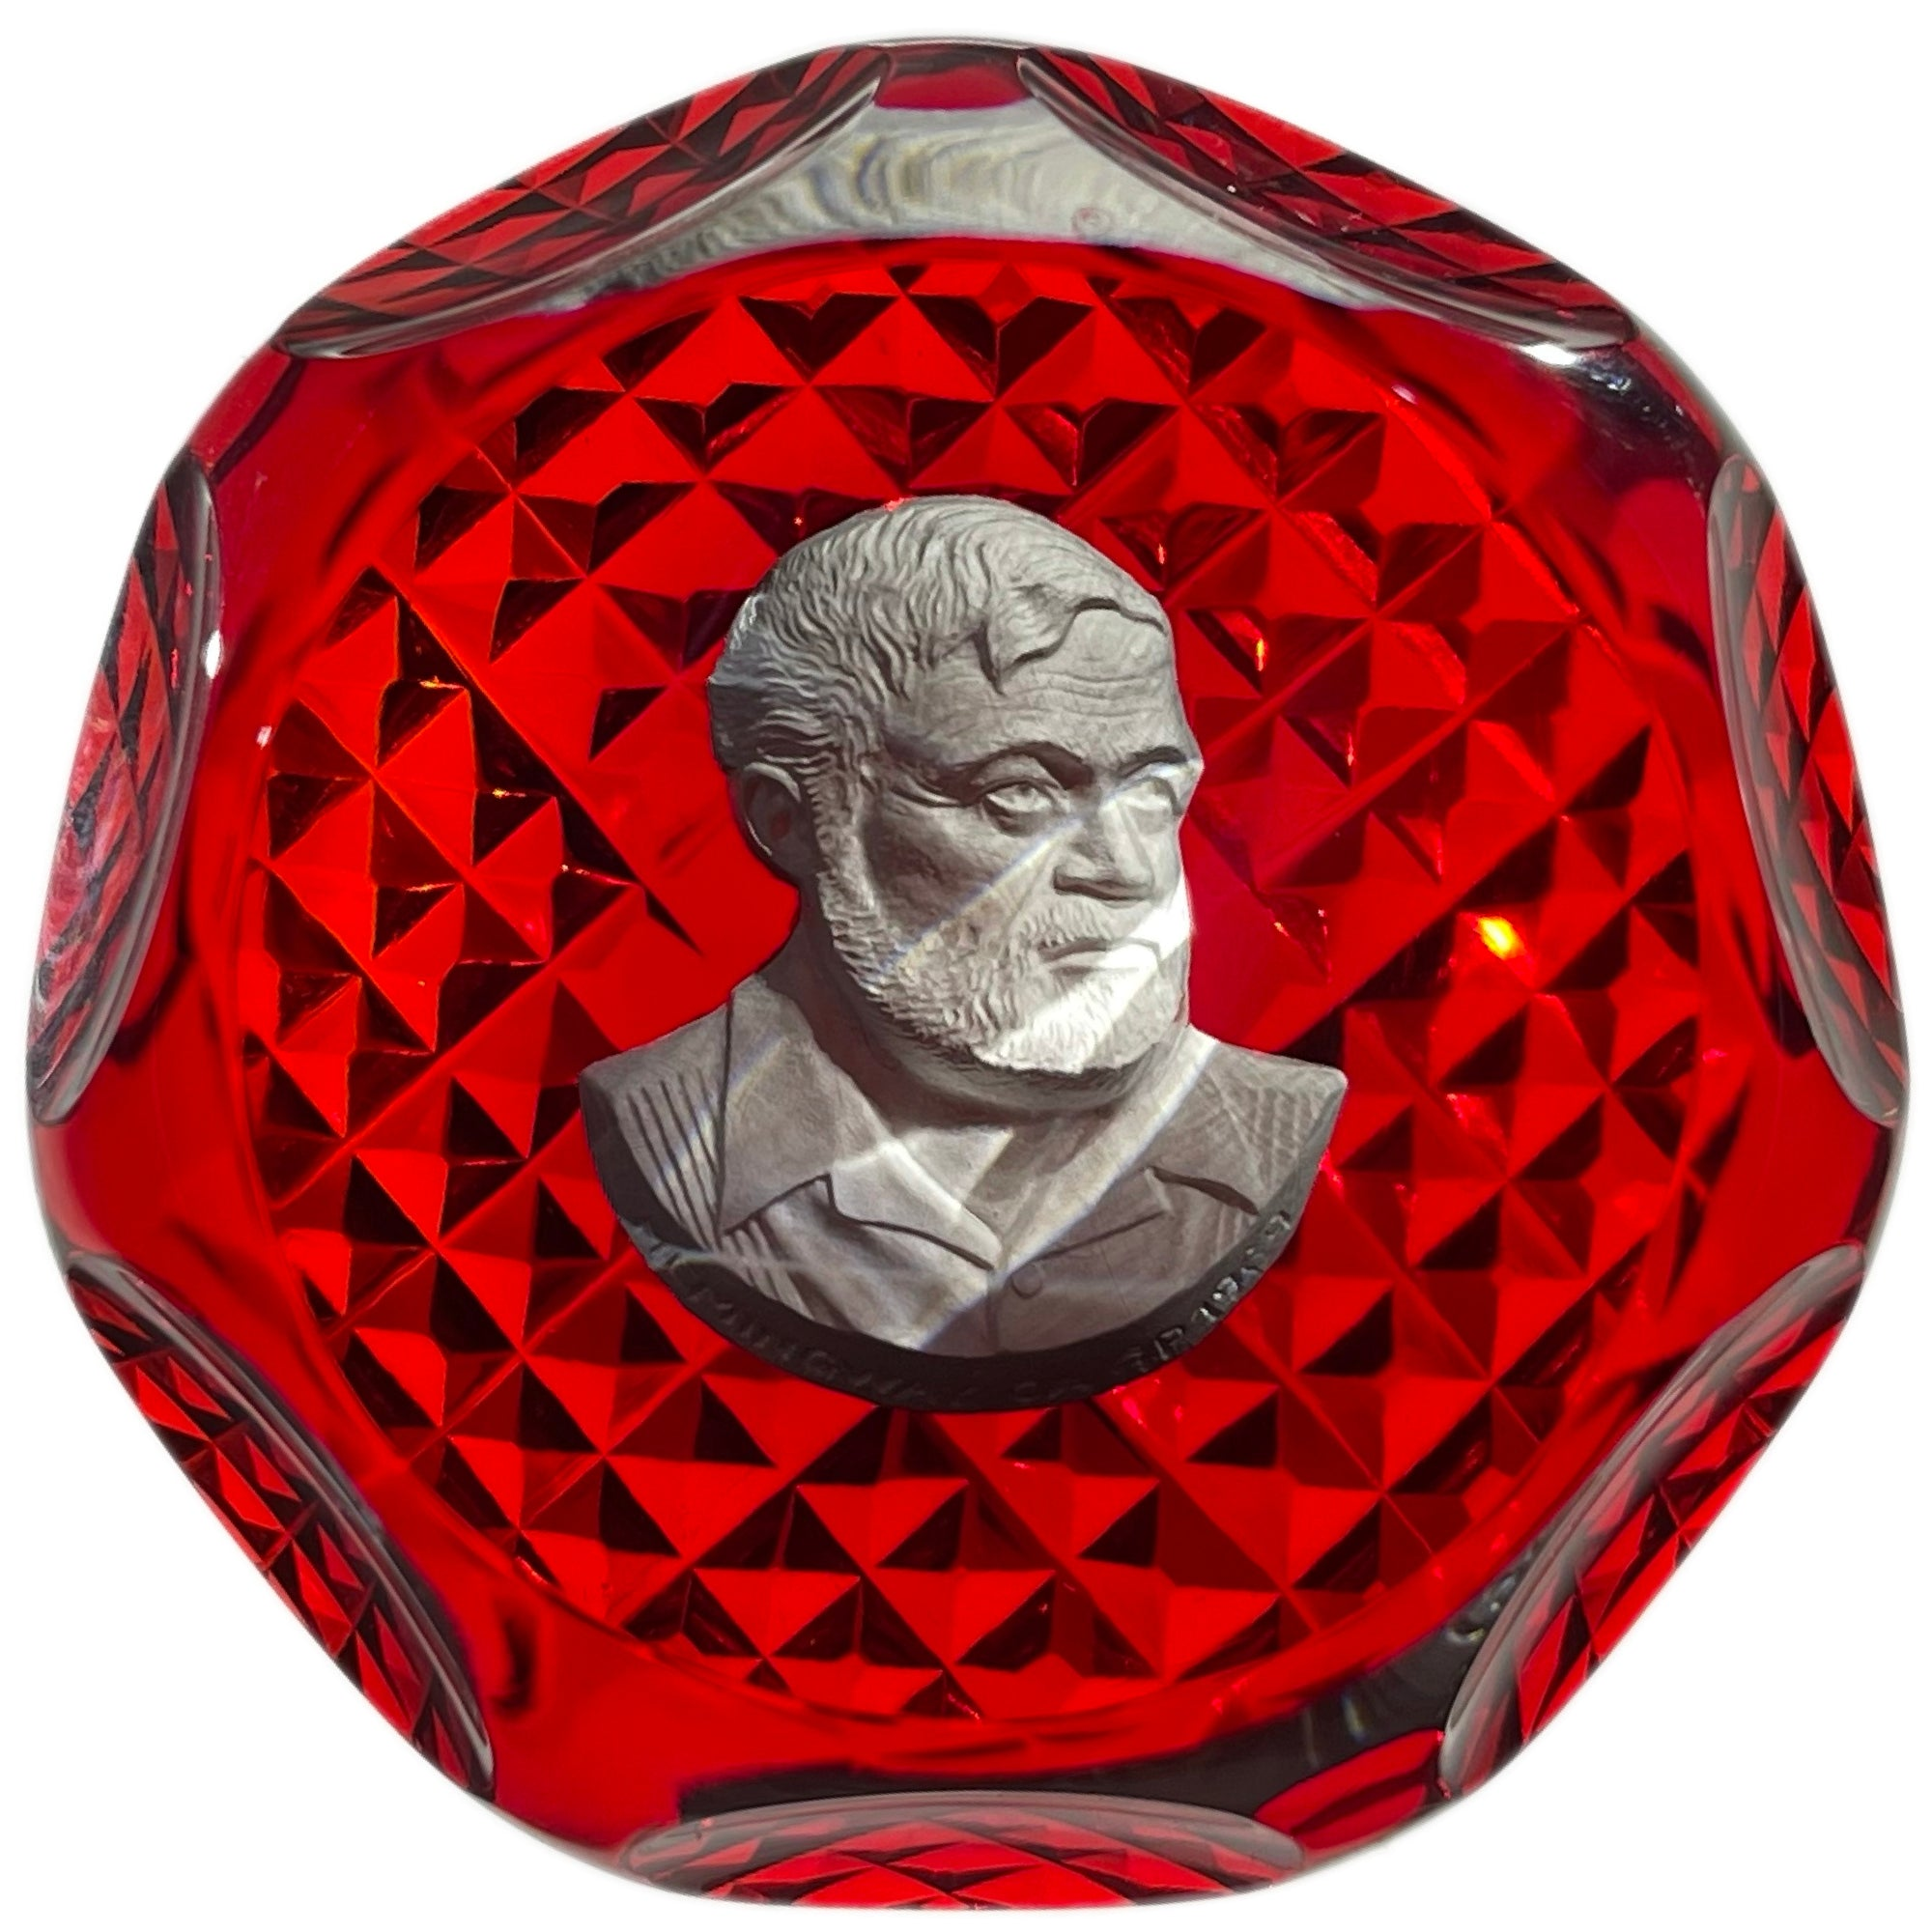 Faceted Cristal d'Albret 1969 Ernest Hemingway Sulphide on Red